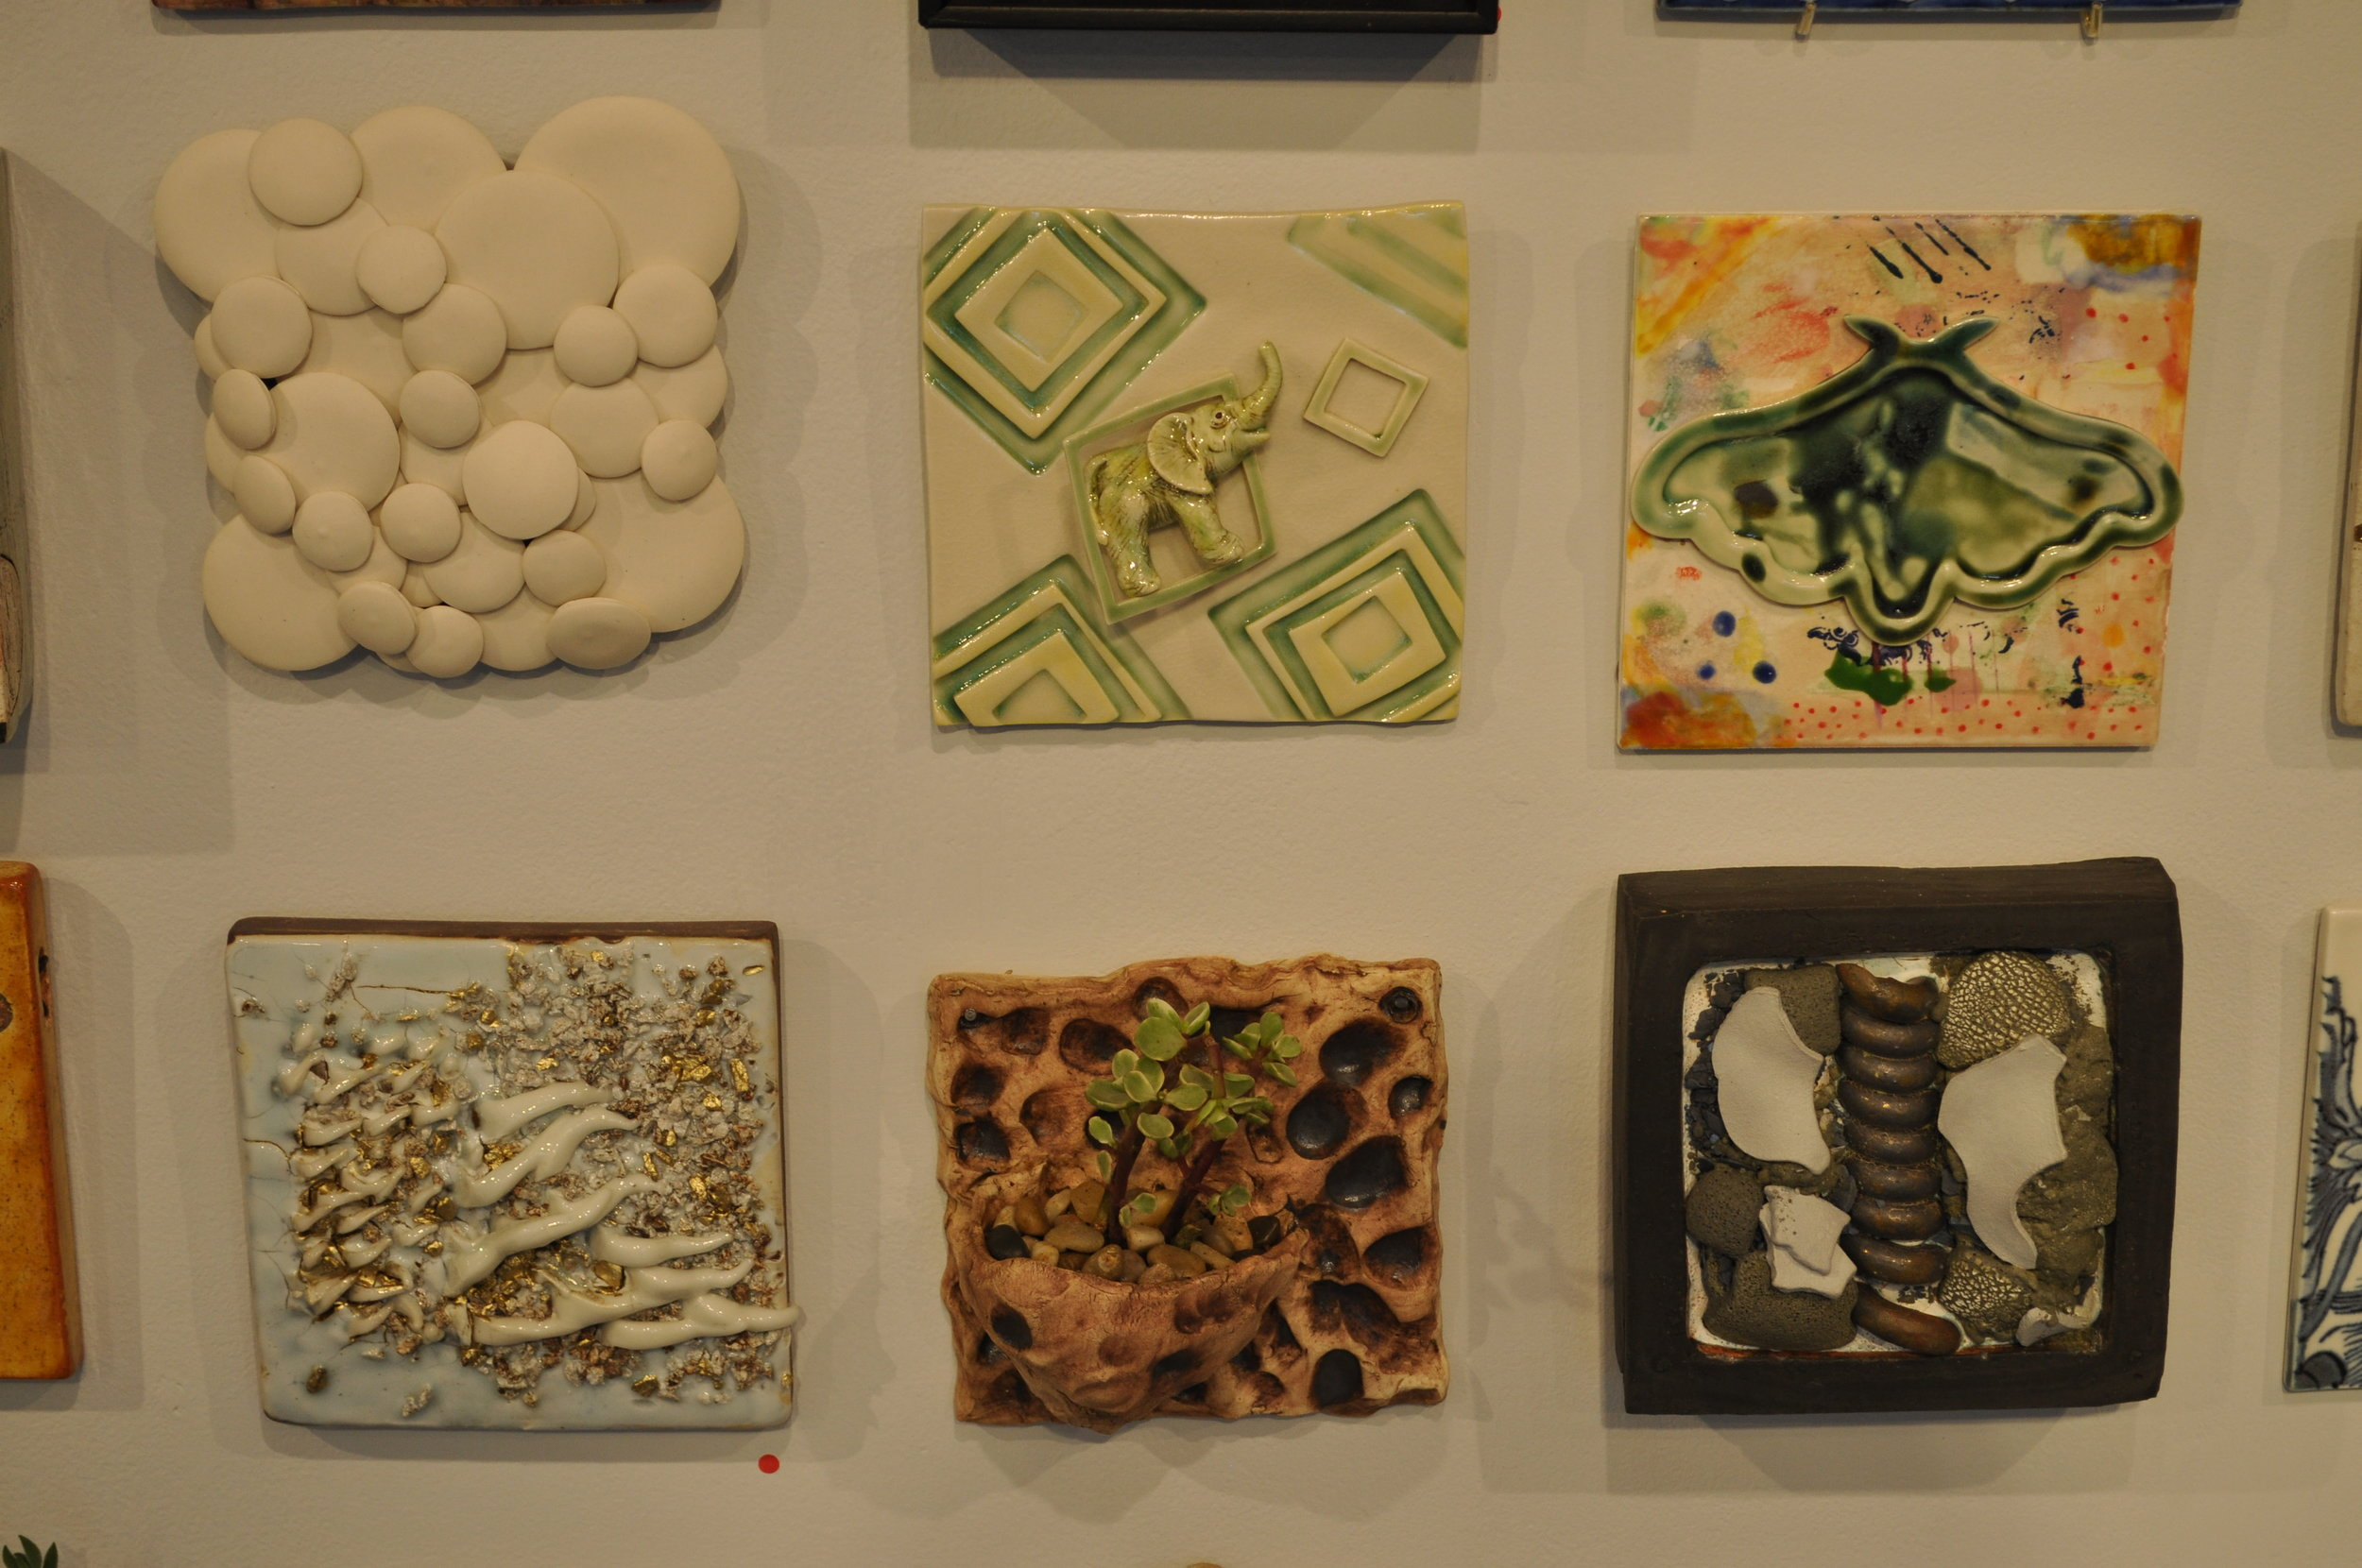 1.  Tabbatha Henry,  Clouds (White)  $125  2 . Sally Ng,  Green Sqaures  $65  3.  Adam Chau,  I Wore Green To The Party  $60  4. Deborah Lecce,  Golden Cone Tile  (SOLD) 5.  Leigh Taylor Mickelson,  Tile Planter  $70  6.  John Britt,  Post Neolithic  (SOLD)